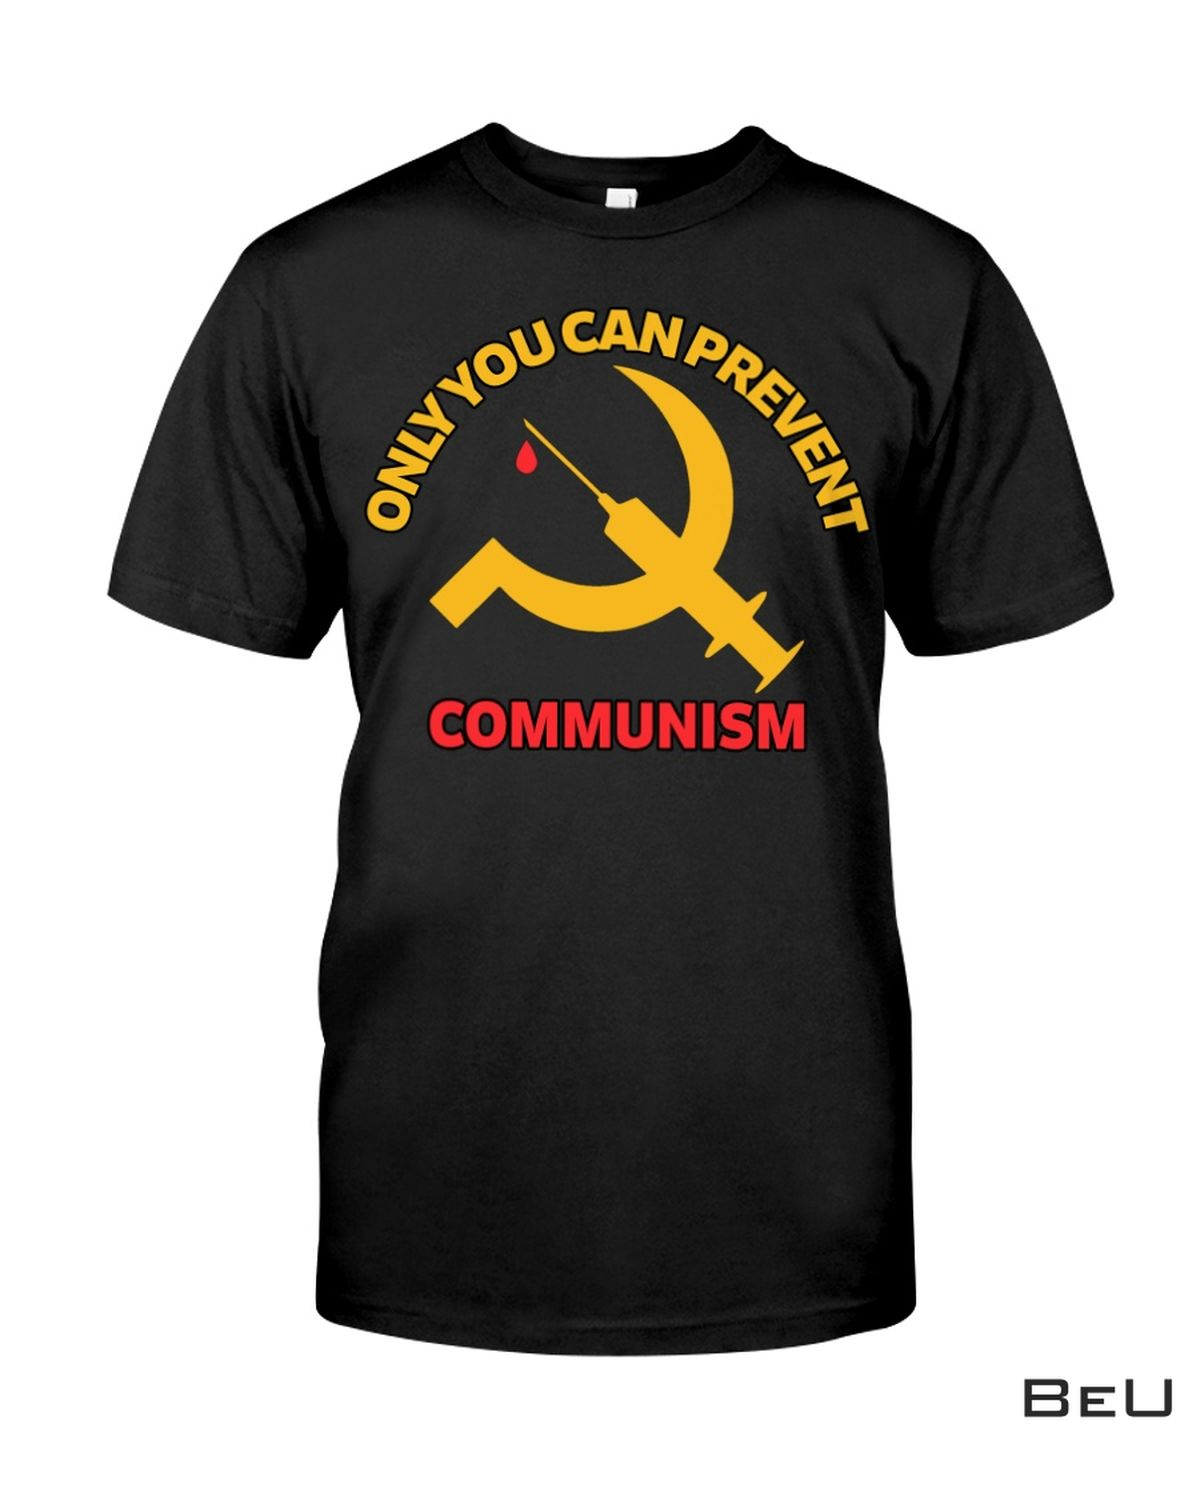 Gorgeous Only You Can Prevent Communism Shirt, hoodie, tank top